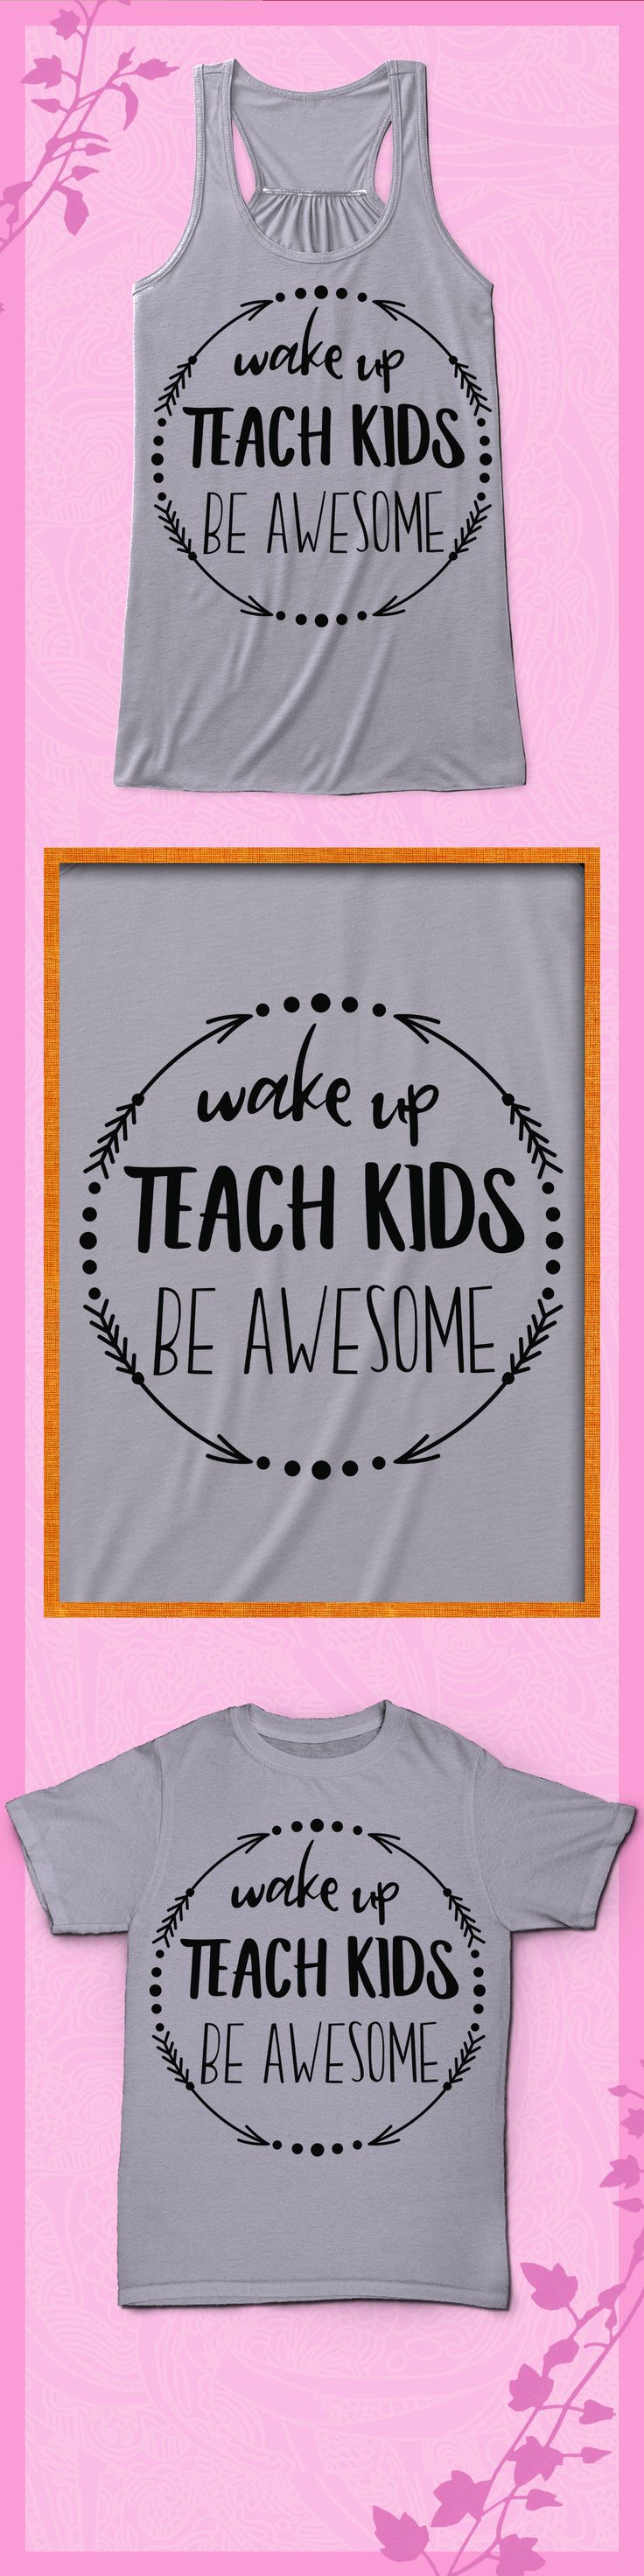 17 Best ideas about School Shirts on Pinterest.